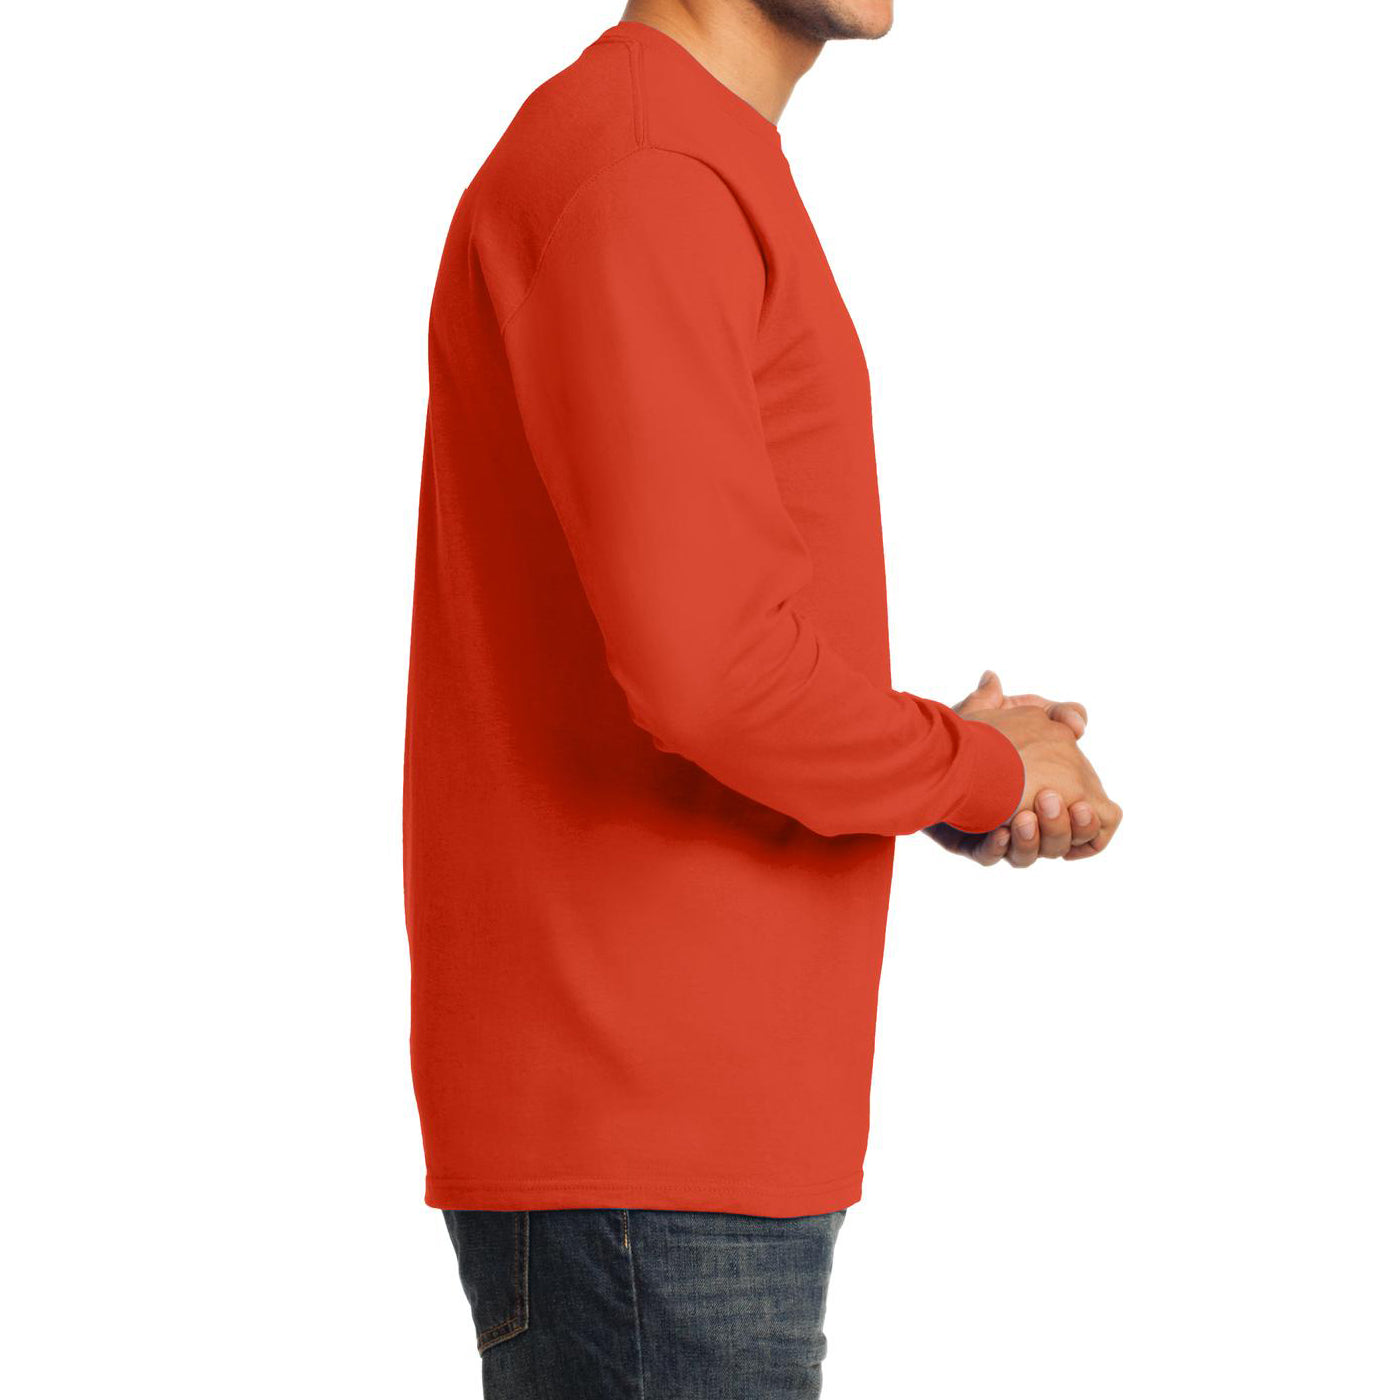 Men's Long Sleeve Essential Tee - Orange - Side